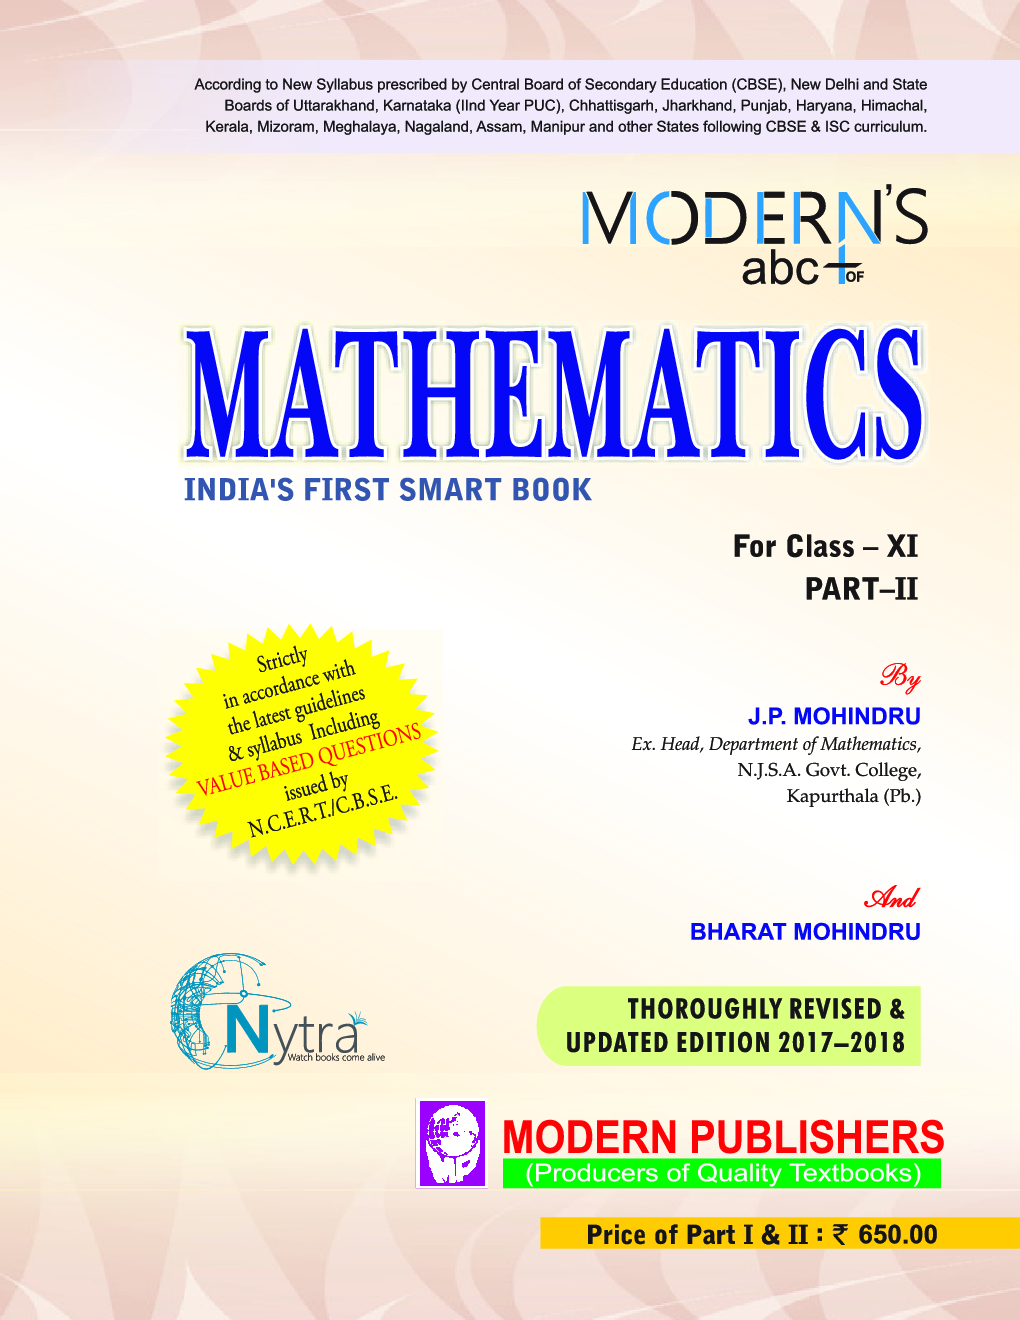 Maharashtra state board ssc maths textbook pdf free download english moderns abc plus of mathematics class 11 part ii by j p mohindru moderns abc plus of fandeluxe Gallery